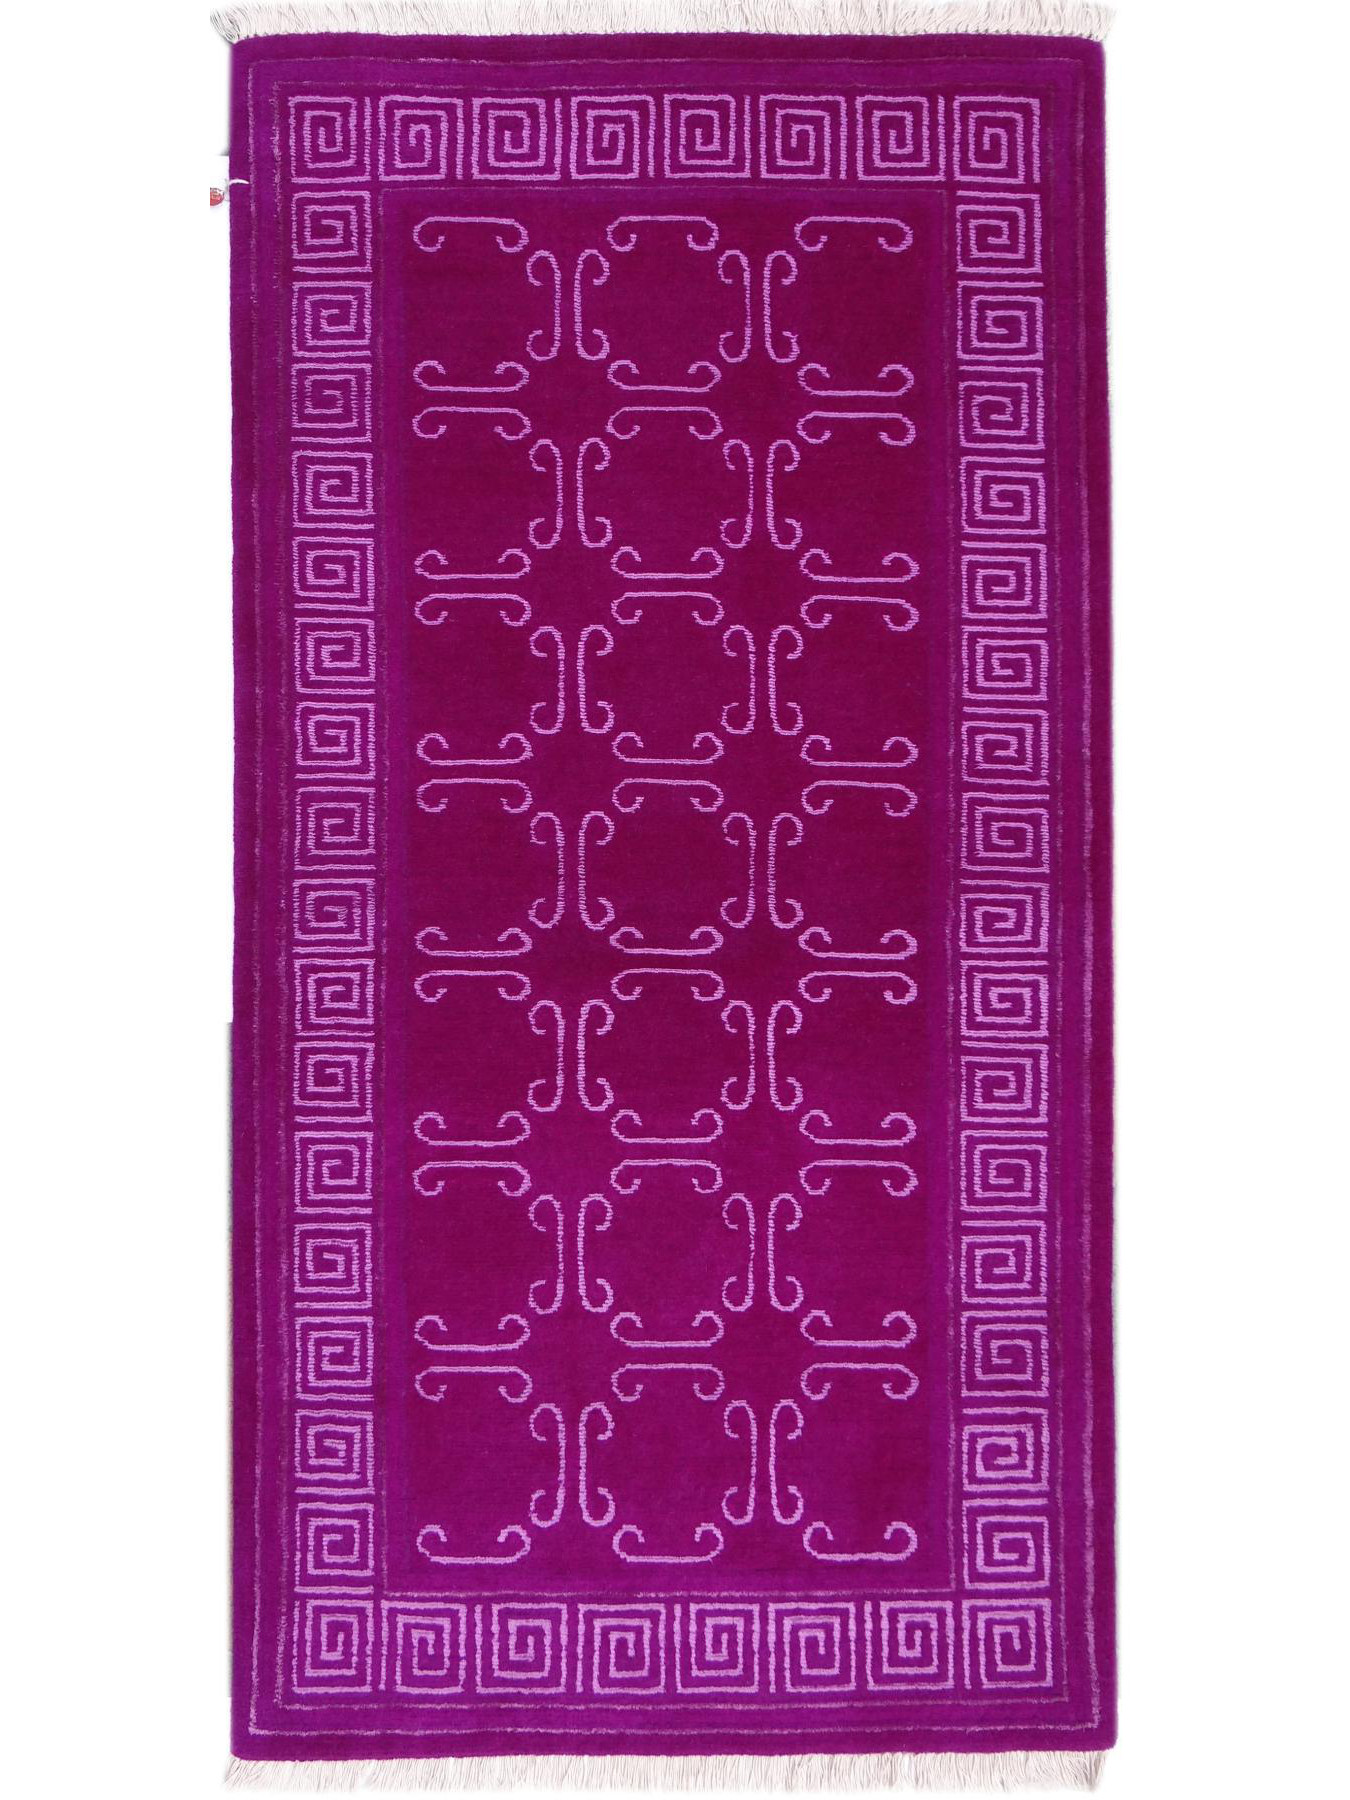 Luxury carpets - GRECO - S5525 VIOLET